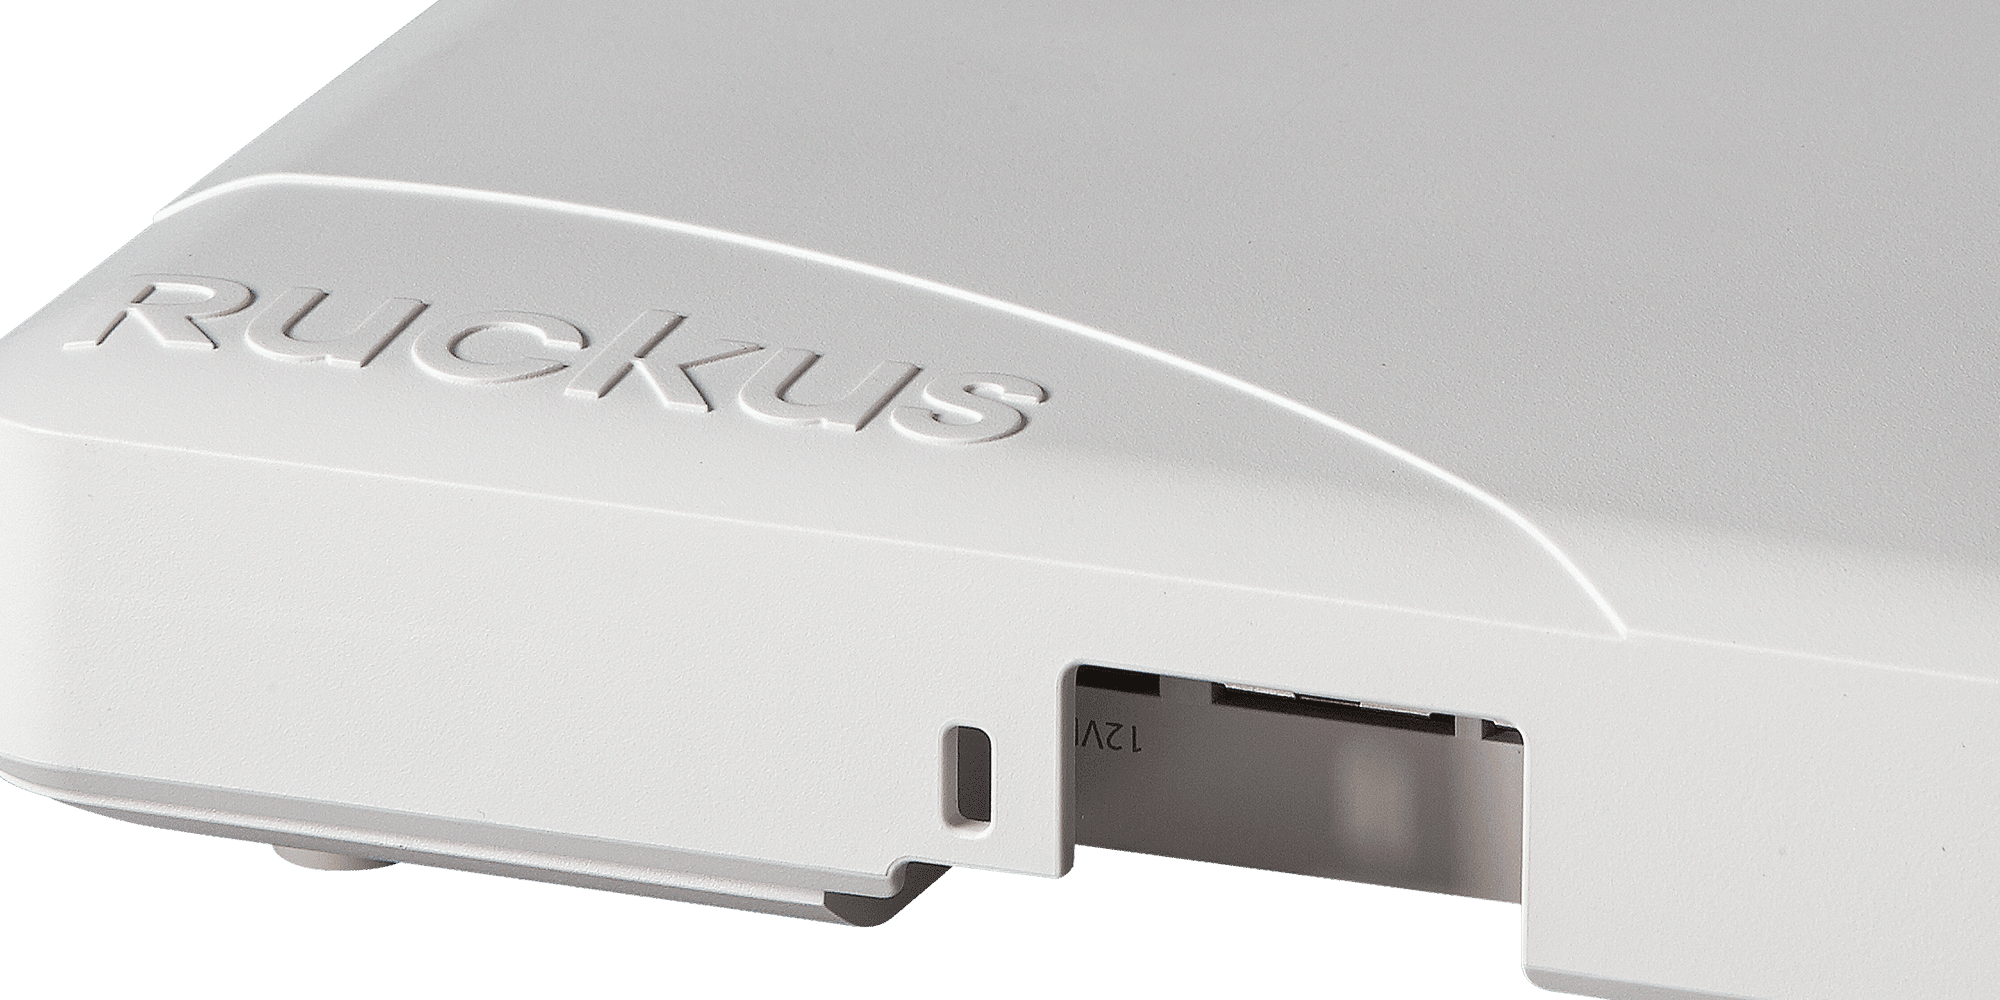 Ruckus Wireless ZONEFLEX R510 MODEL